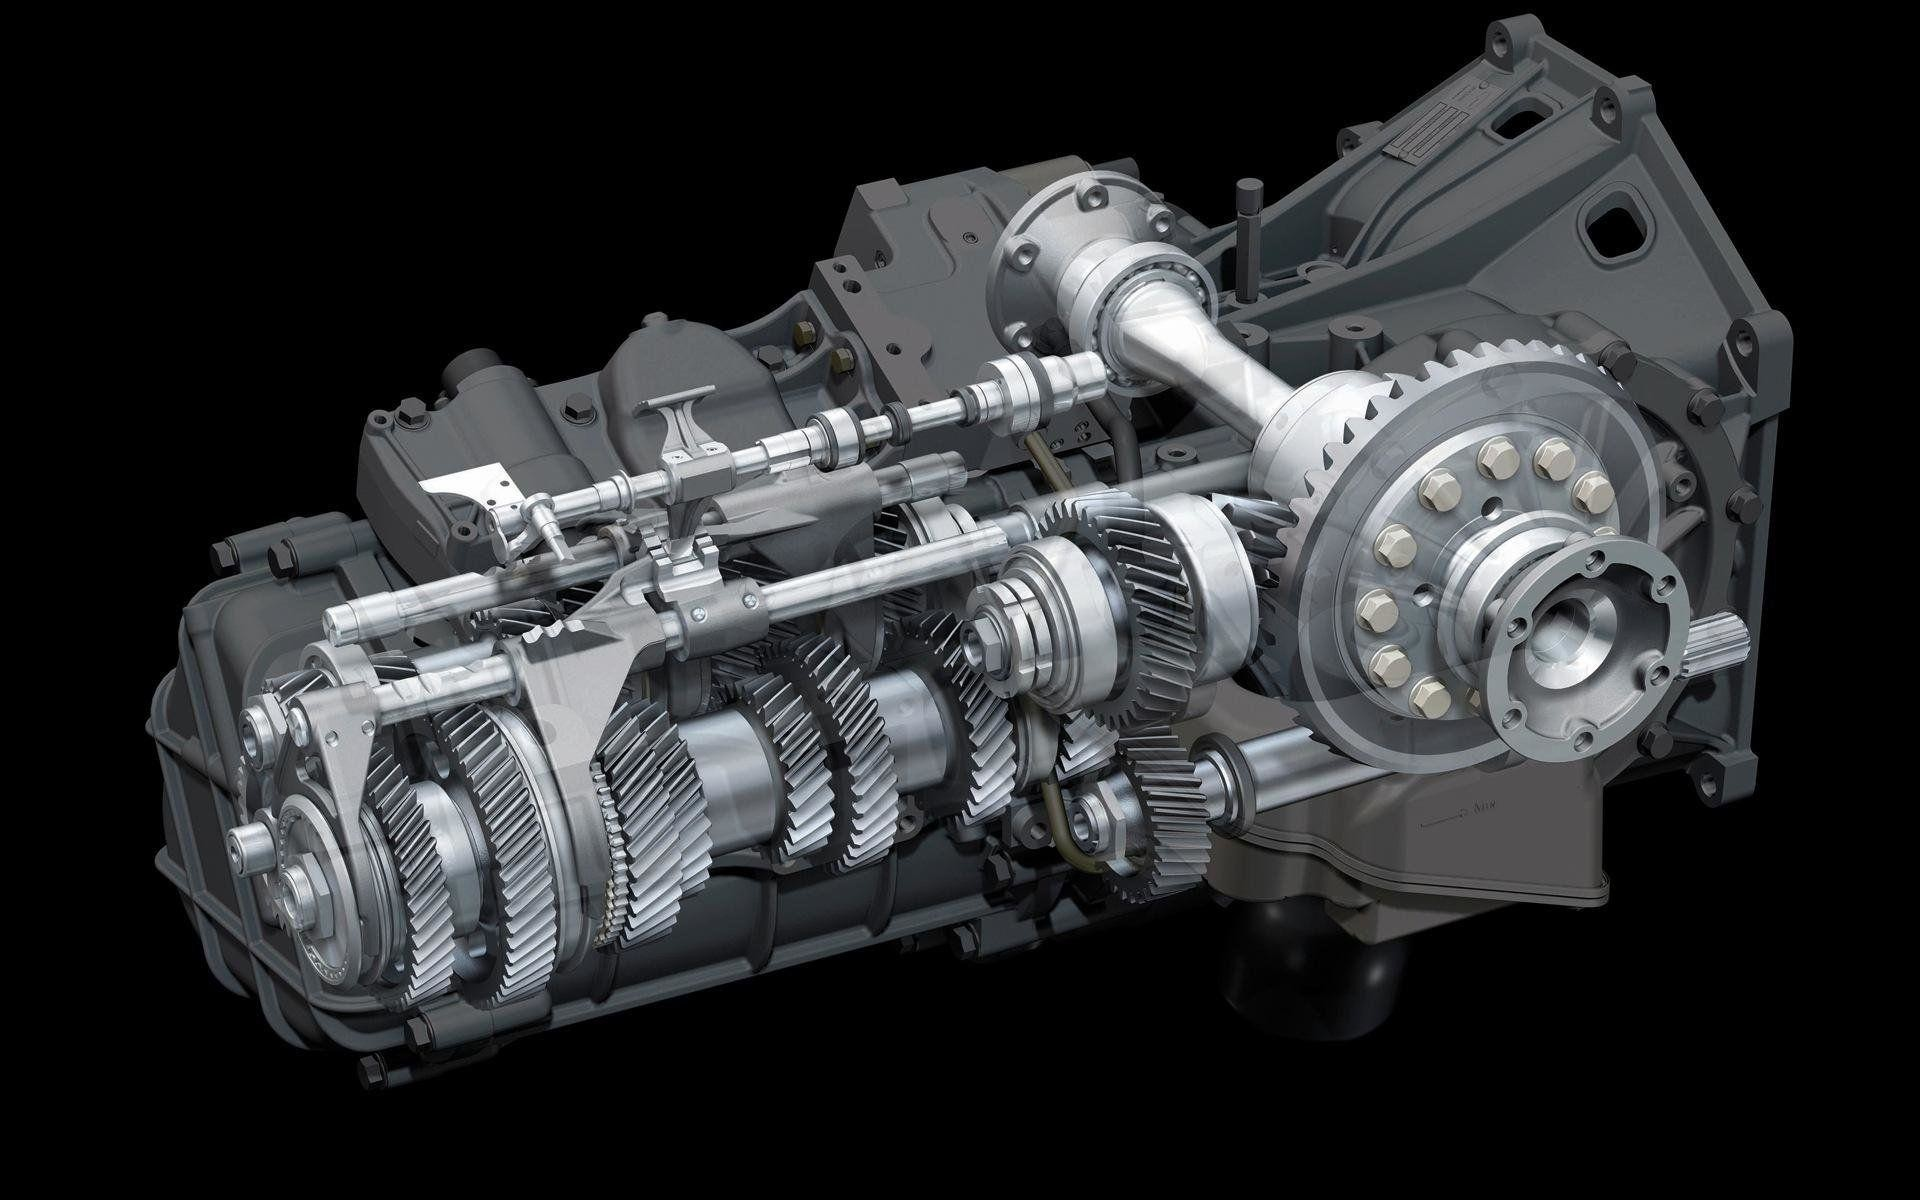 1920x1200 Desktop Mechanical Engineering Wallpapers Hd Wallpapersafari .